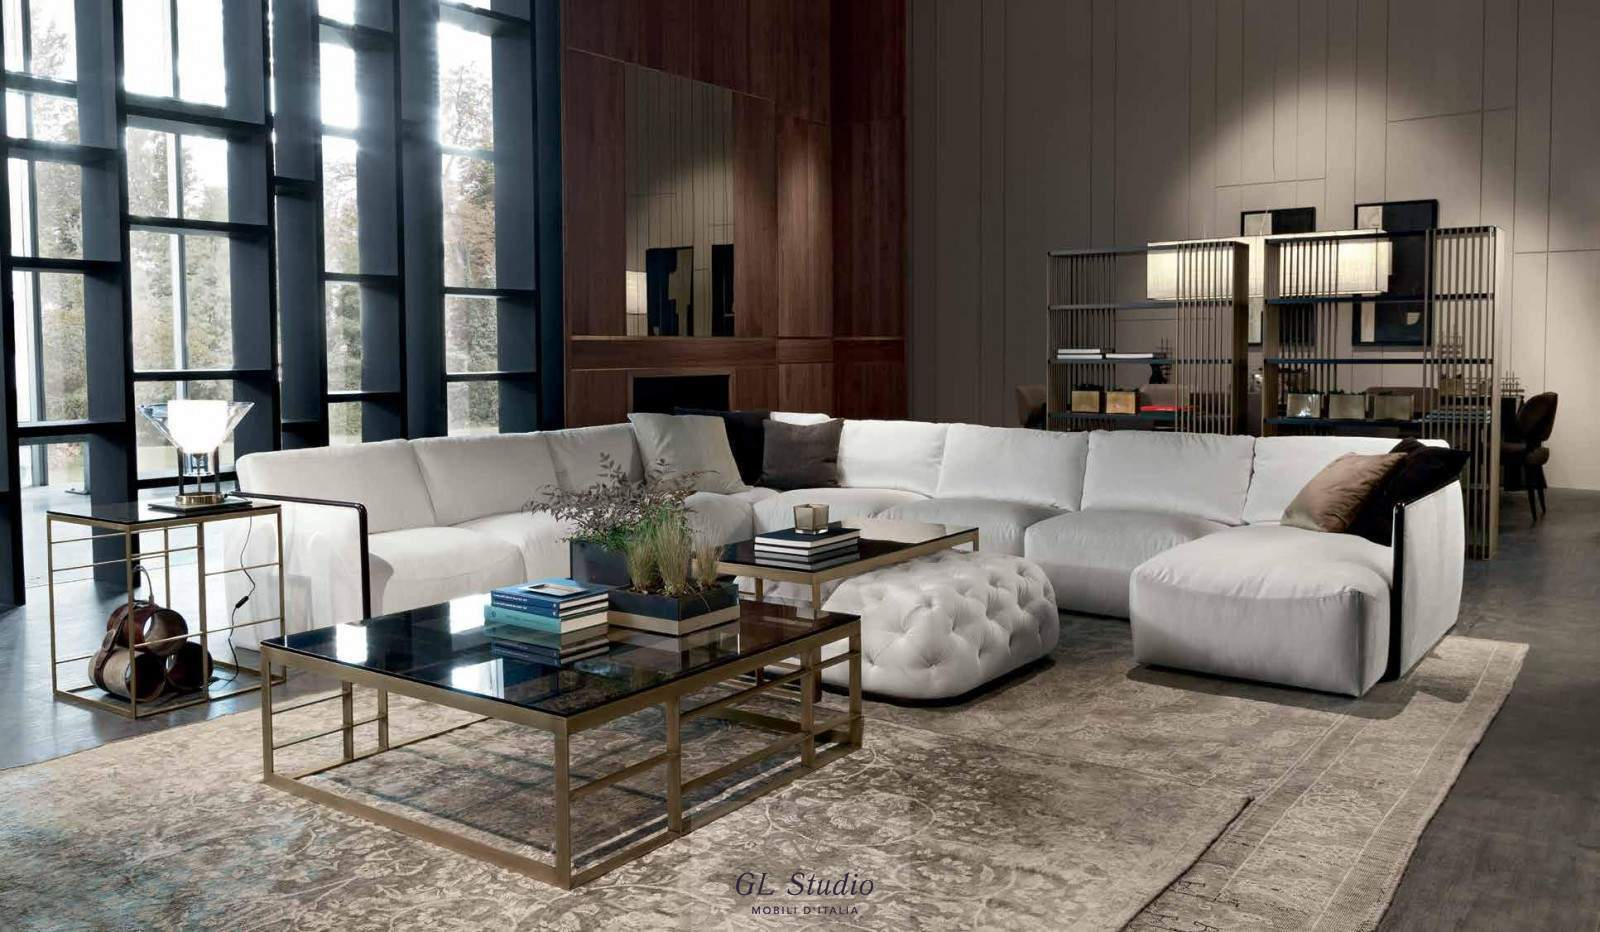 Selva Philipp Living Composition 3 от gl-studio